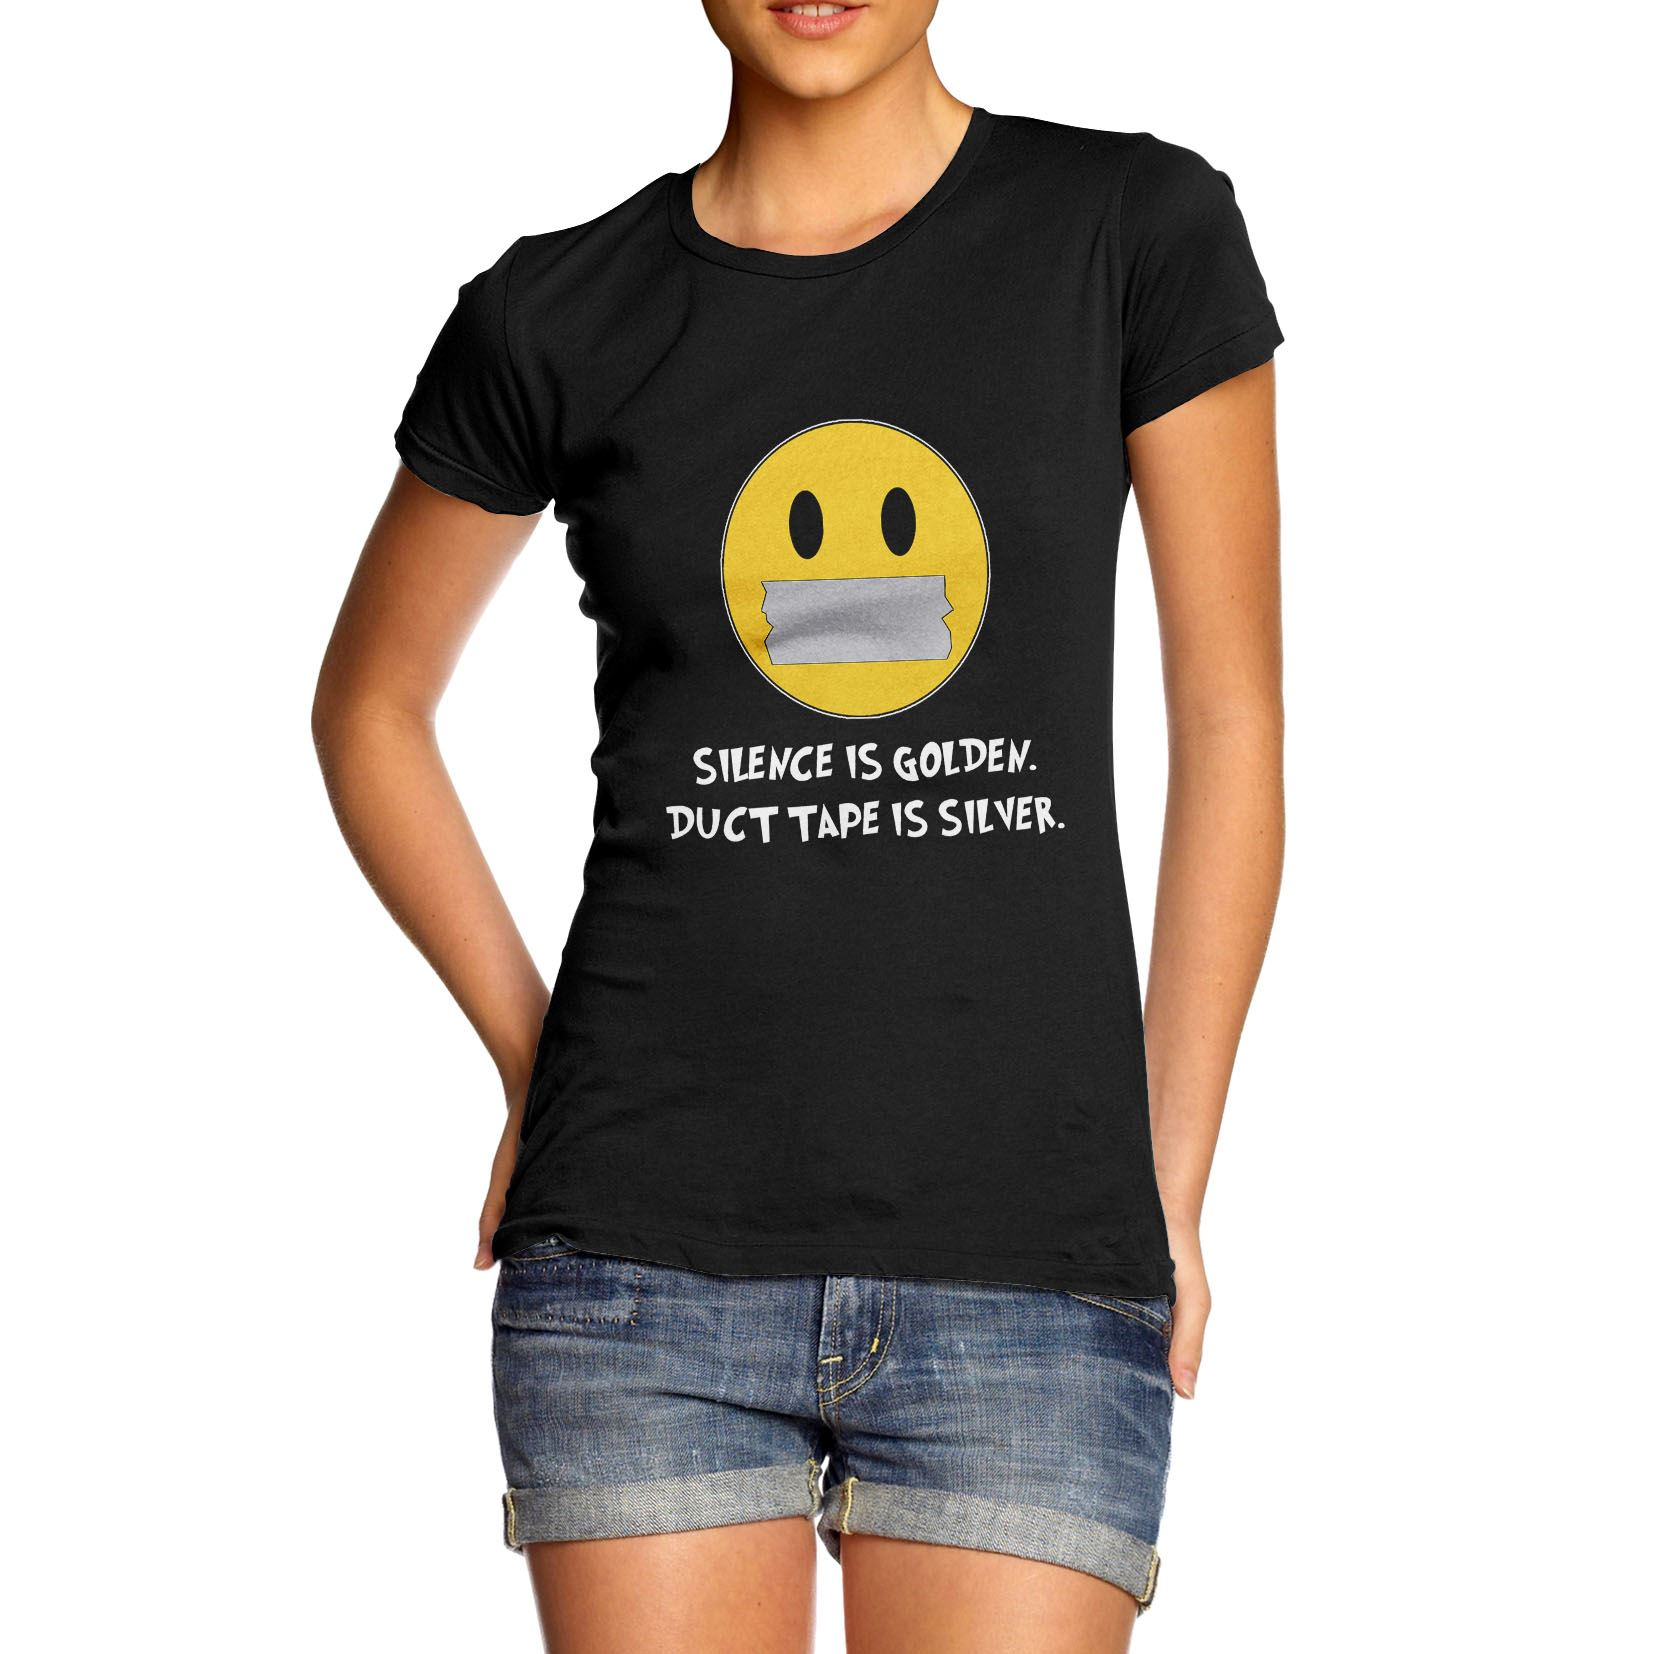 SILENCE IS GOLDEN DUCK TAPE IS SILVER funny T-shirts humour sarcastic top slogan